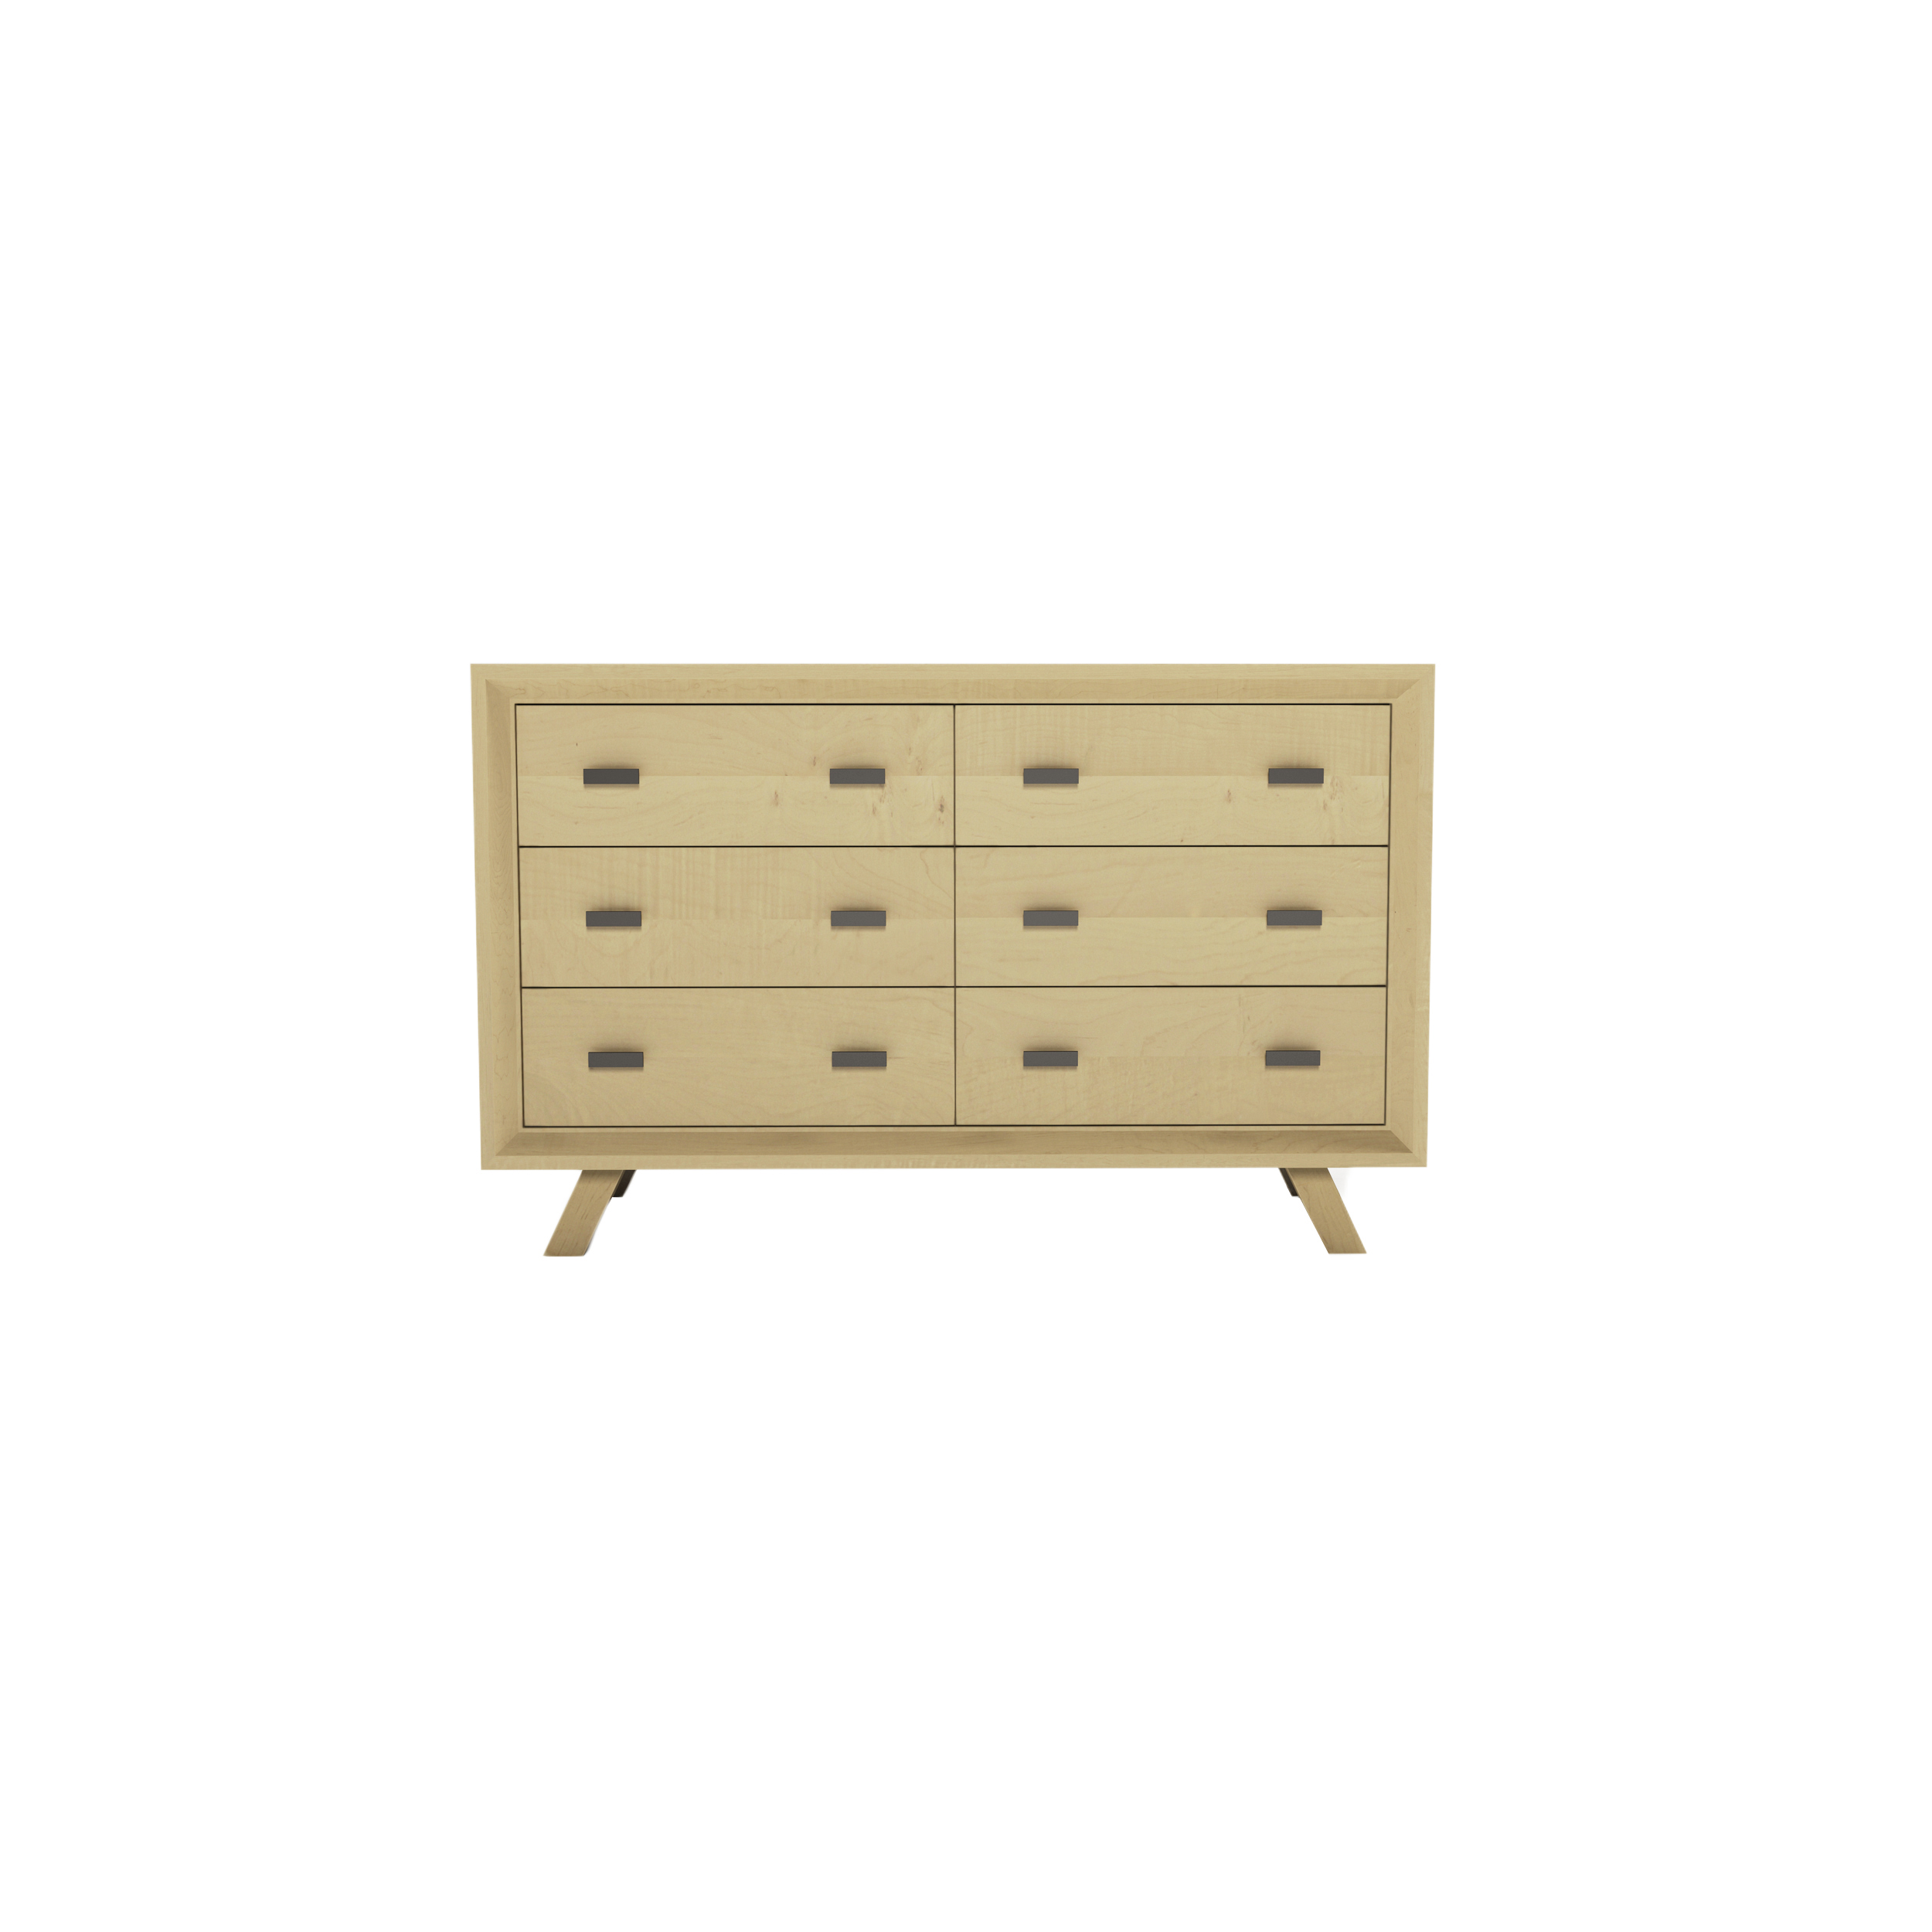 Series 555 Dresser With Six Drawers At 48″ In Width